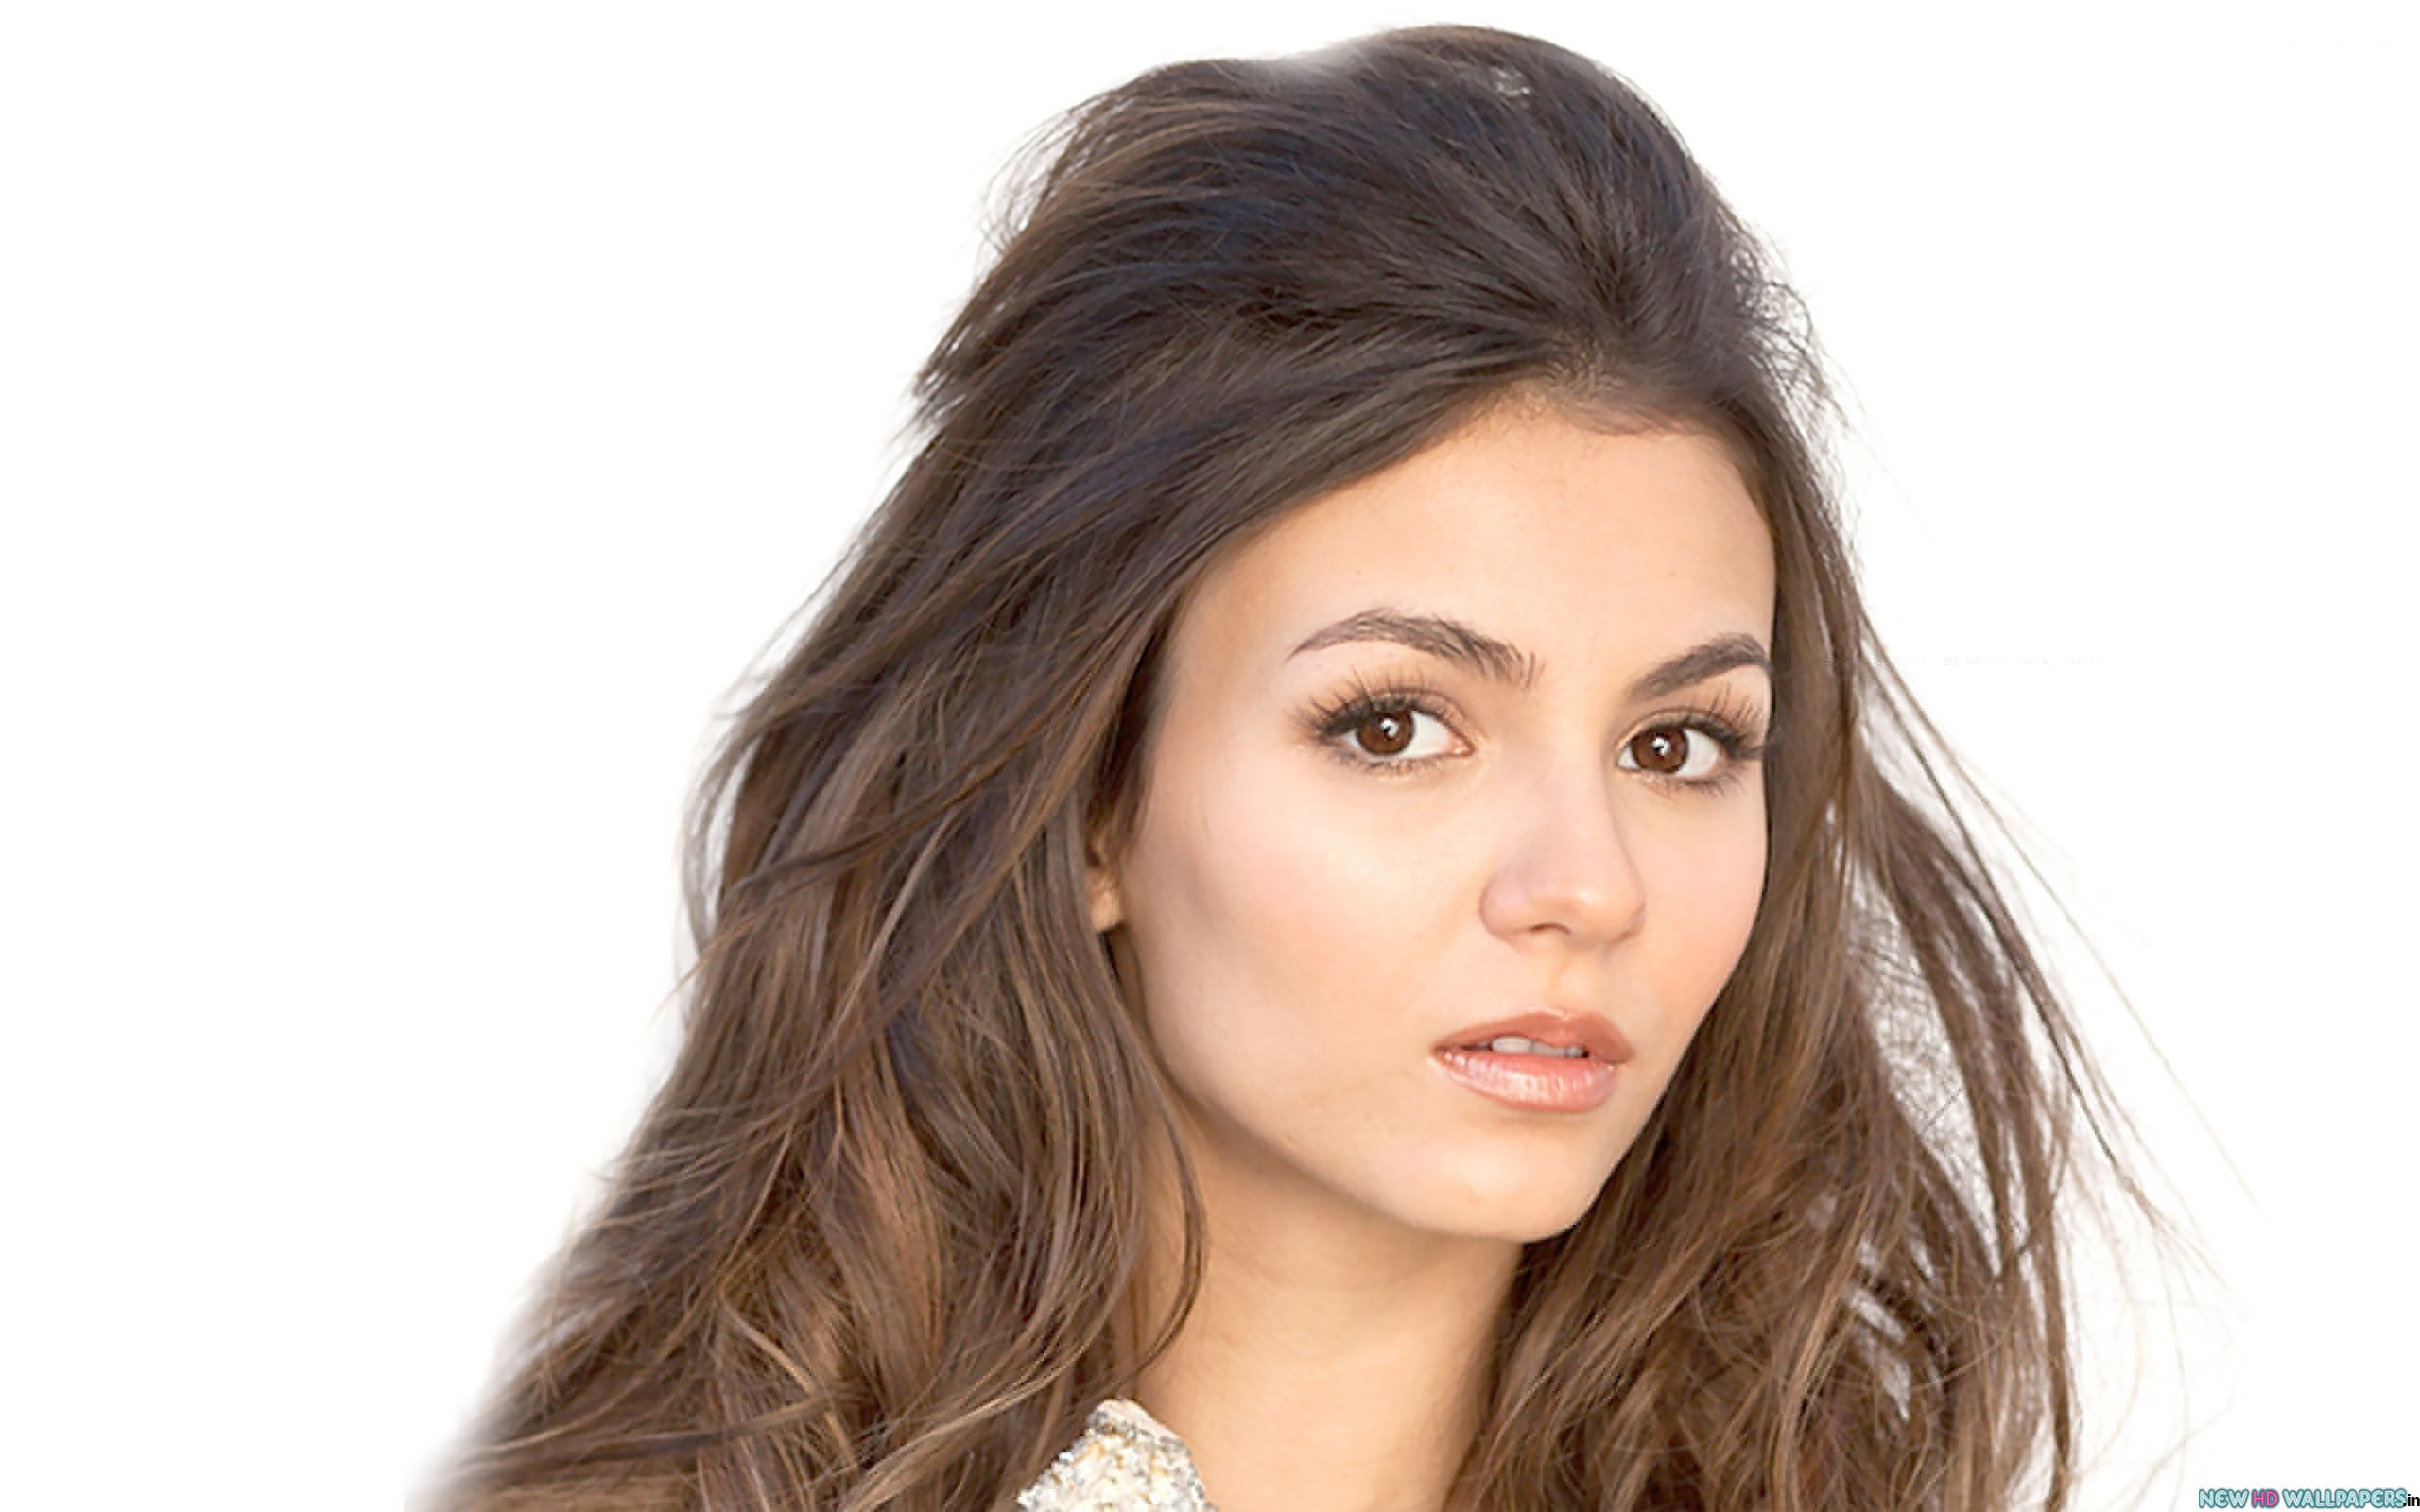 Victoria Justice Sexy Face wallpaper in Celebrities wallpapers 2560x1600